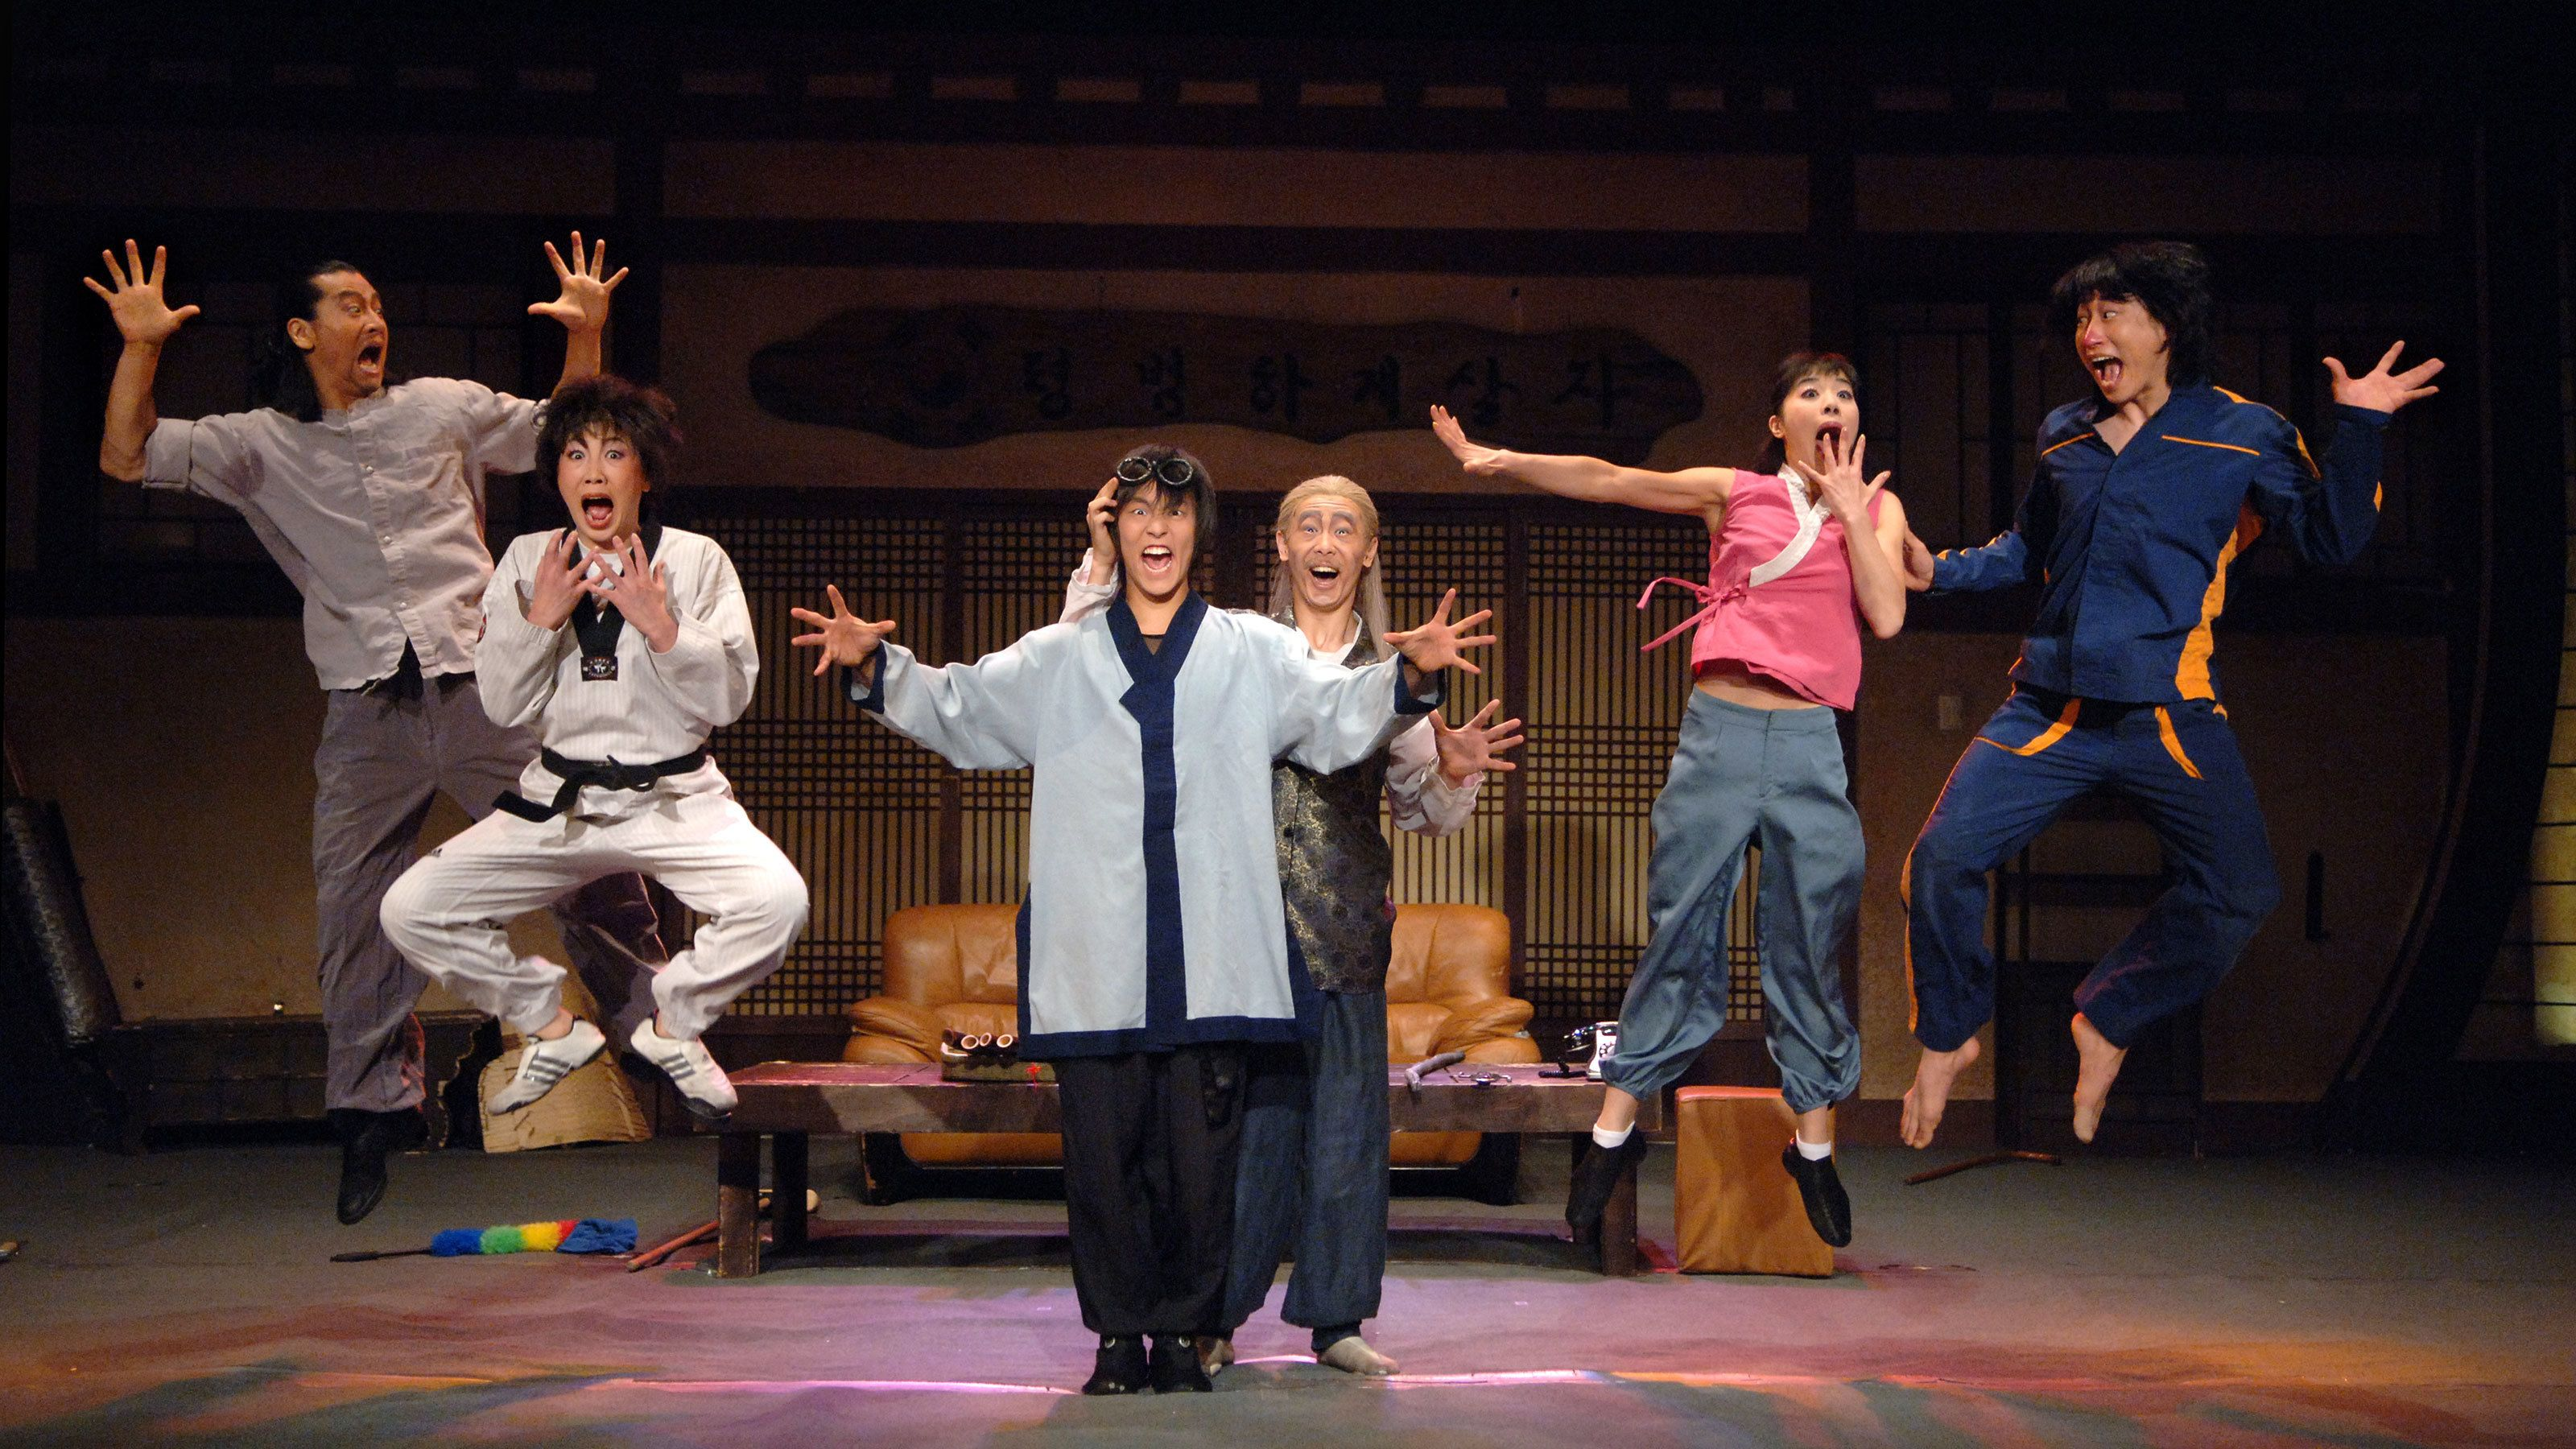 Performers on stage in seoul